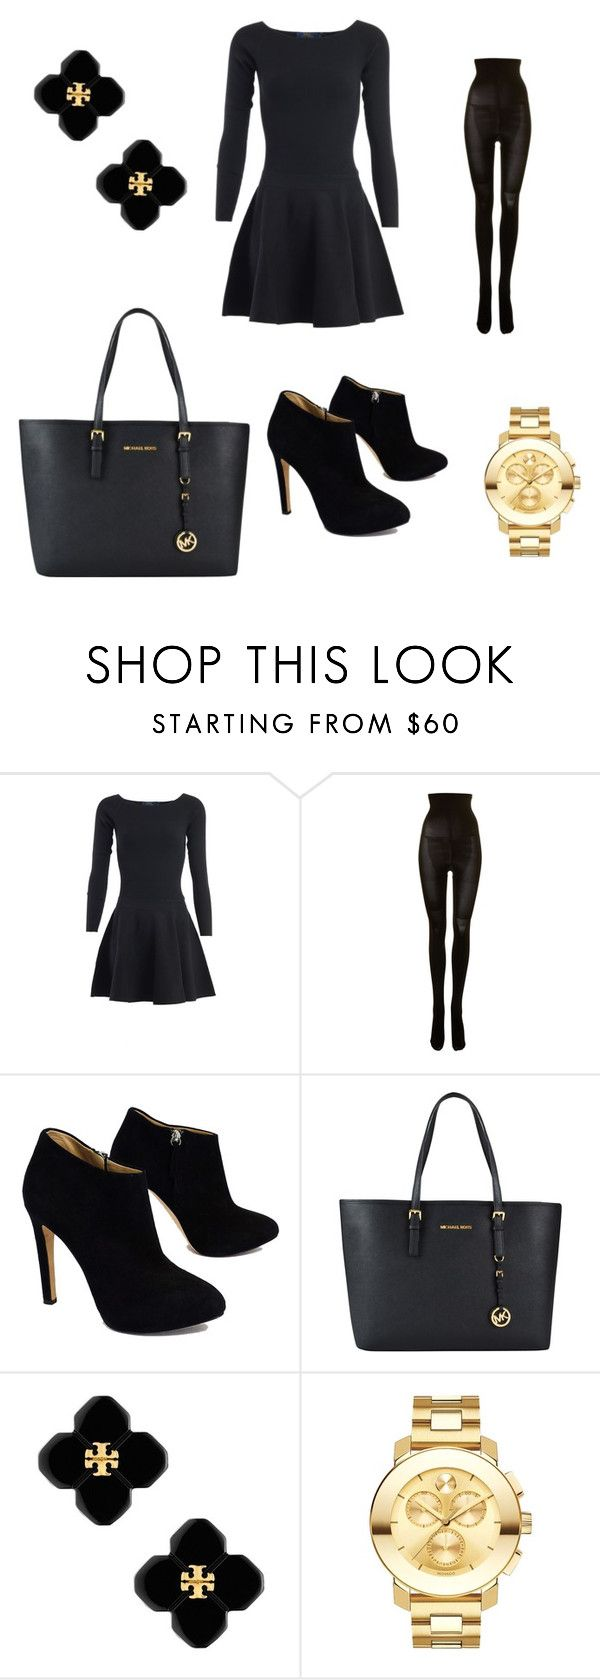 """Untitled #18"" by mariachun on Polyvore featuring Ralph Lauren, SPANX, Giuseppe Zanotti, MICHAEL Michael Kors, Tory Burch and Movado"